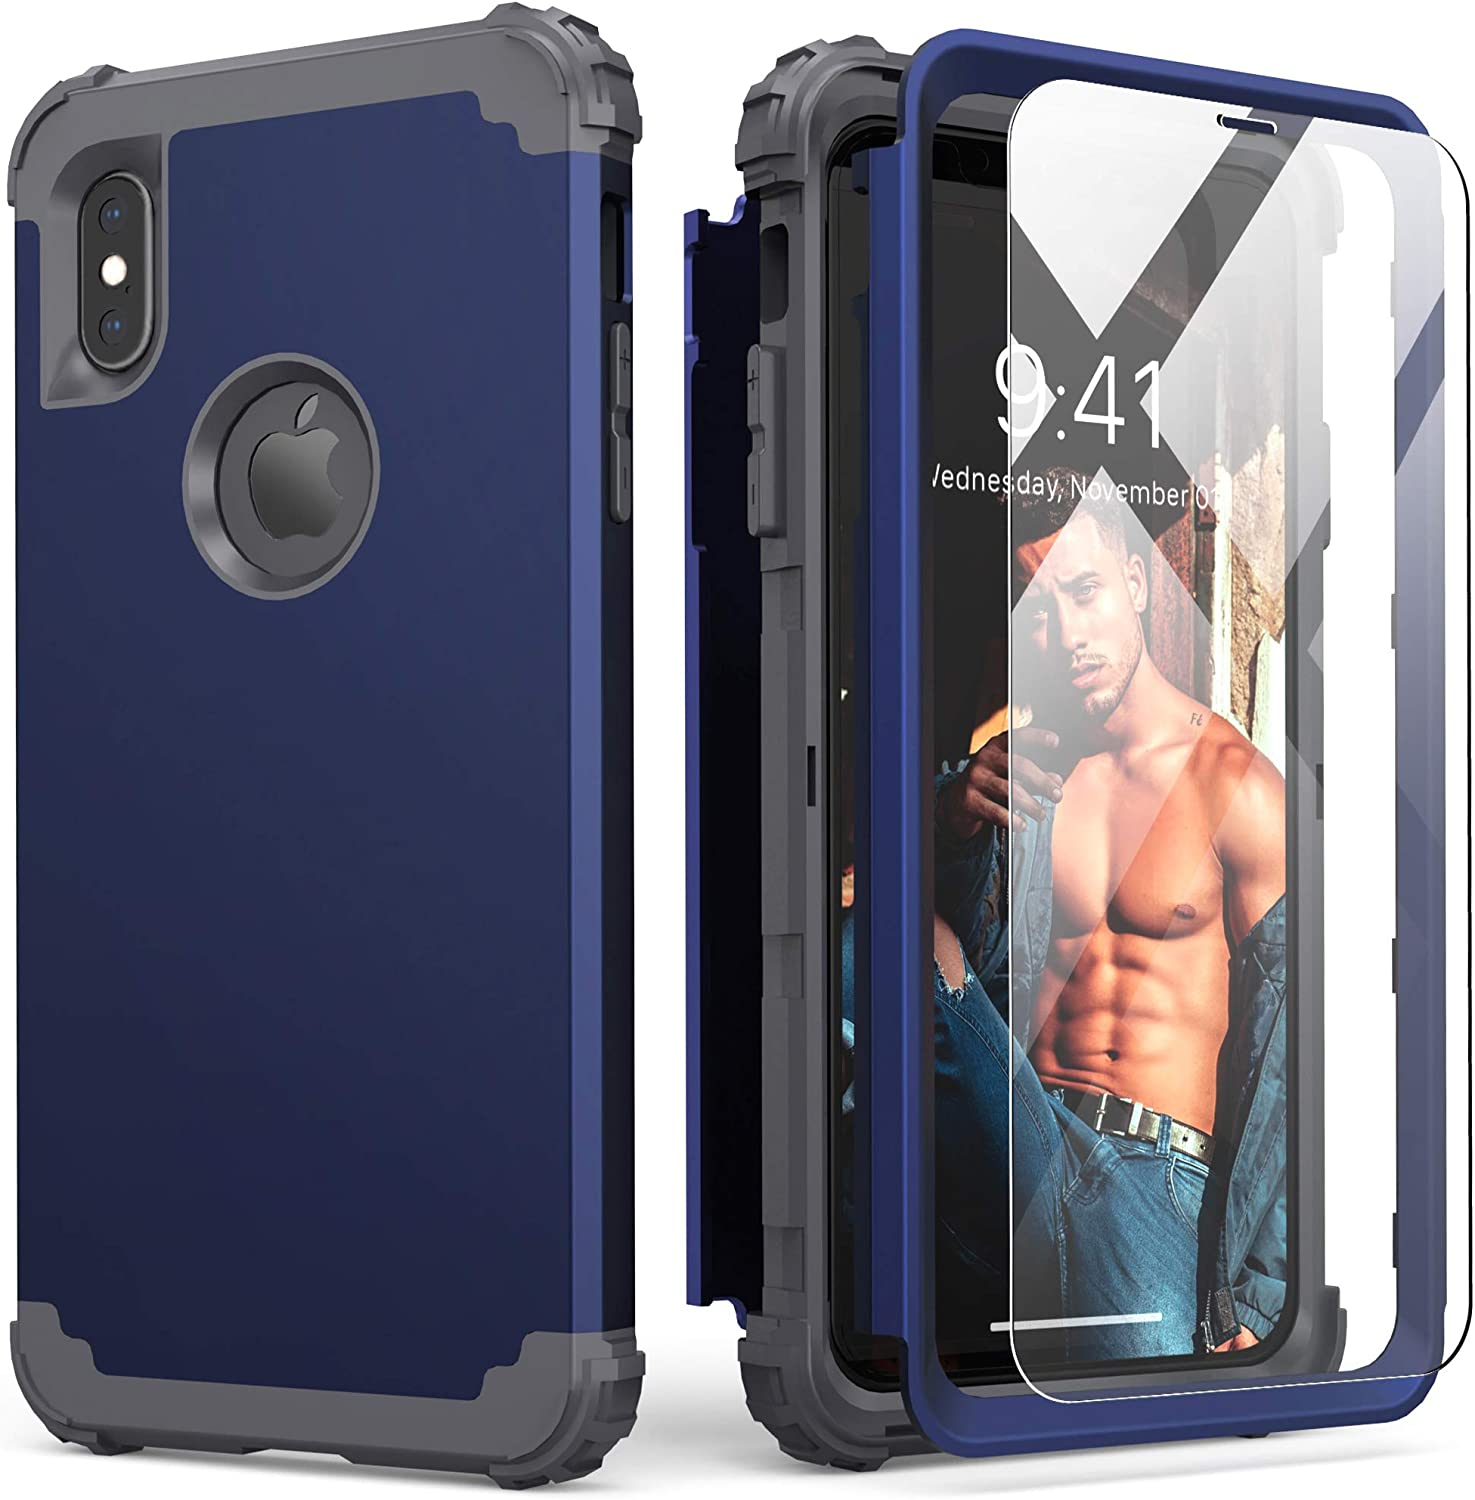 IDweel iPhone Xs Max Case with Tempered Glass, Hybrid 3 in 1 Shockproof Slim Fit Heavy Duty Protection Hard PC Cover Soft Silicone Rugged Bumper Full Body Case for iPhone Xs Max 6.5 Inch, Blue